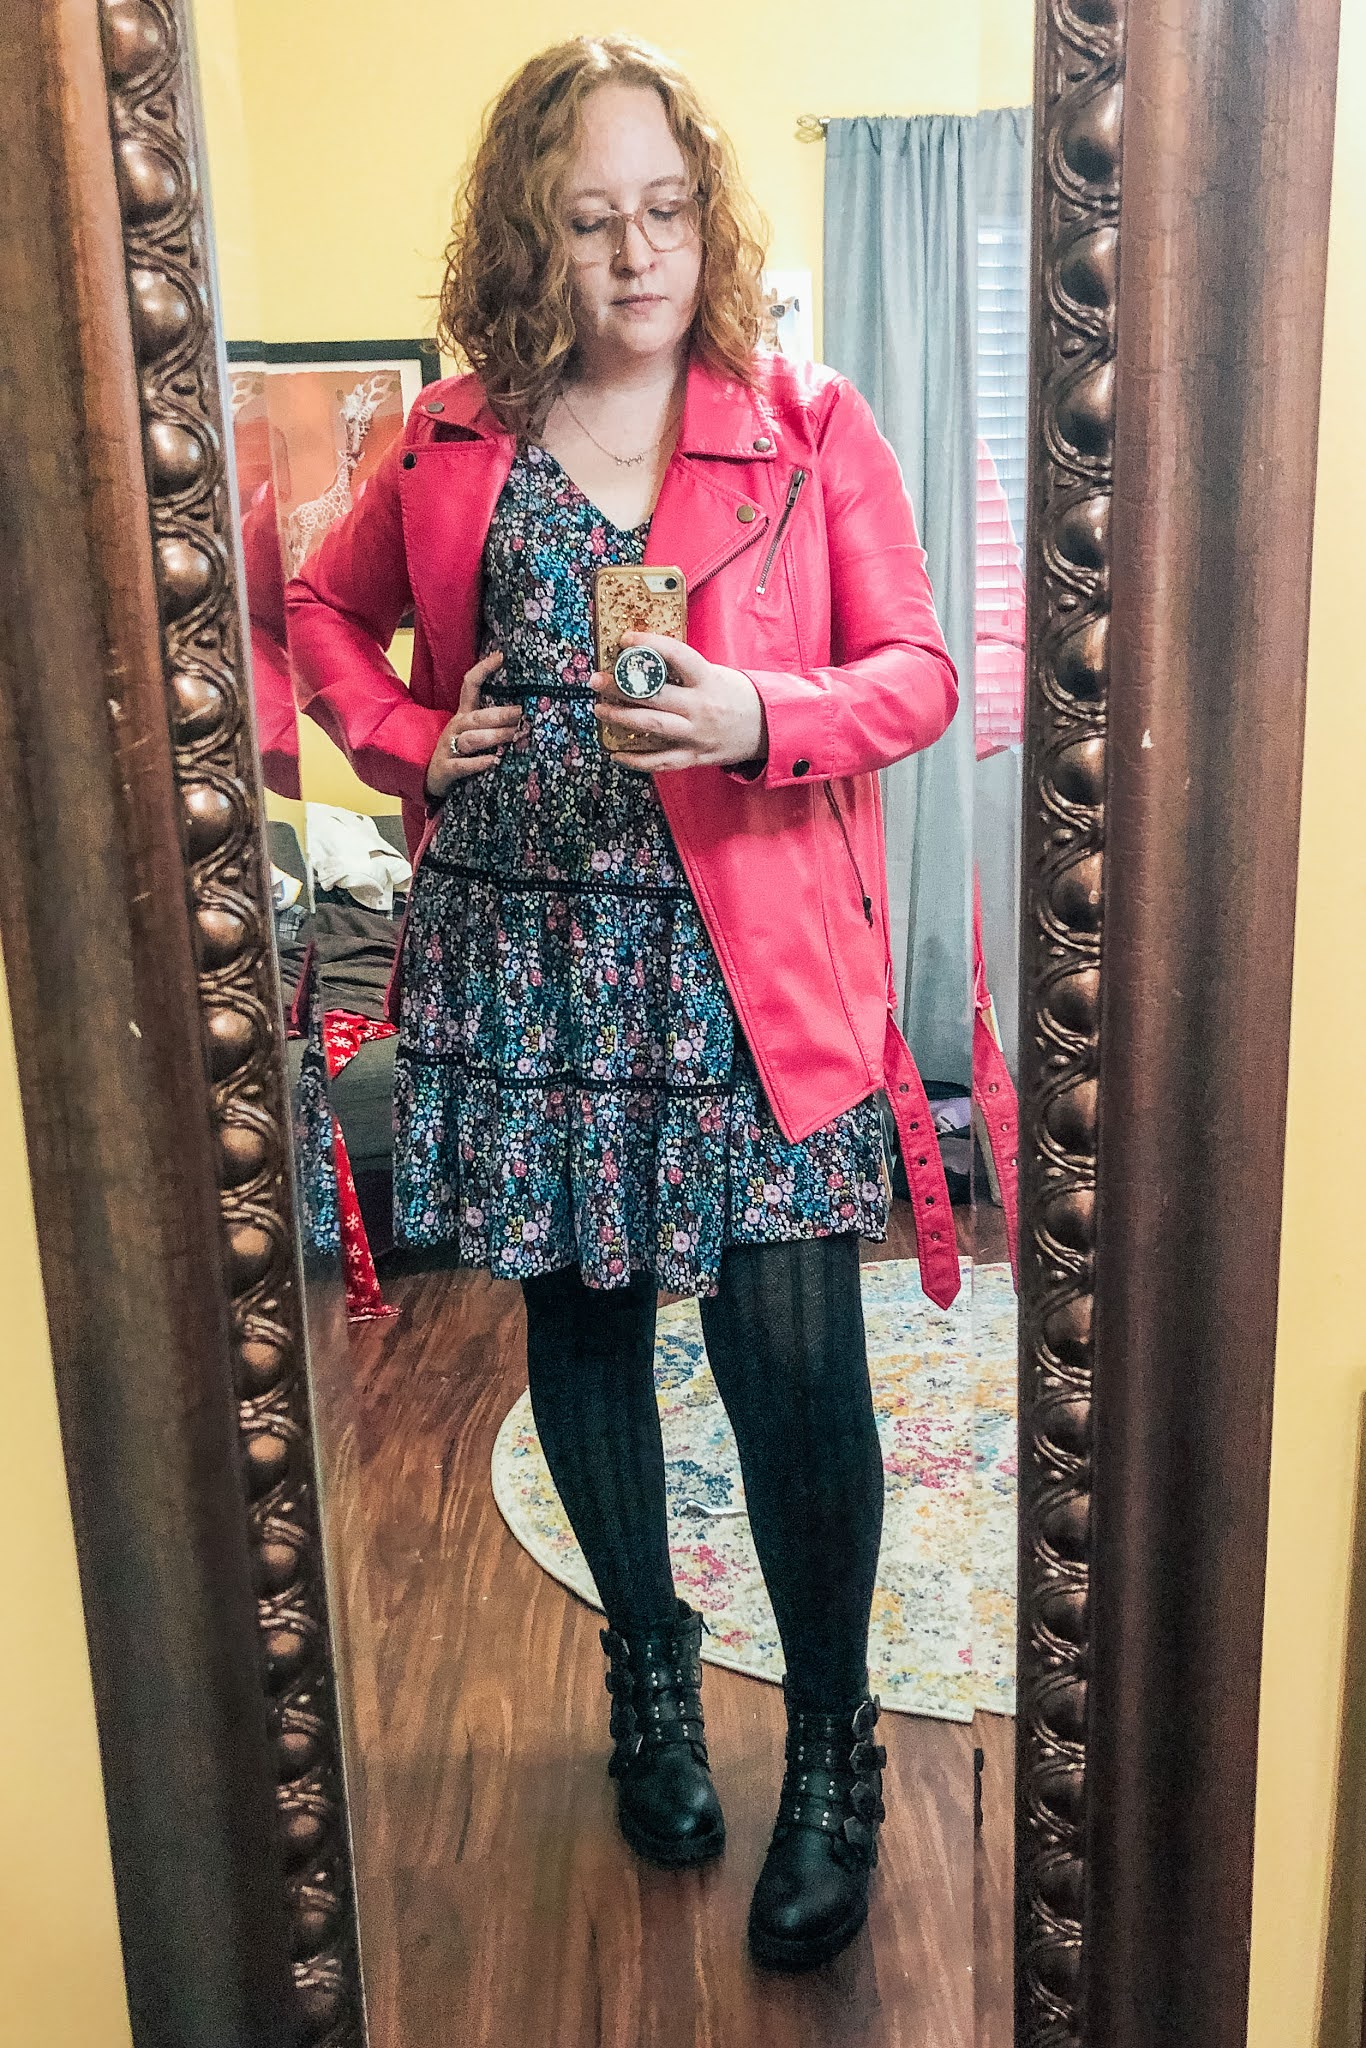 purple-floral-print-babydoll-dress-tights-moto-boots-pink-leather-jacket